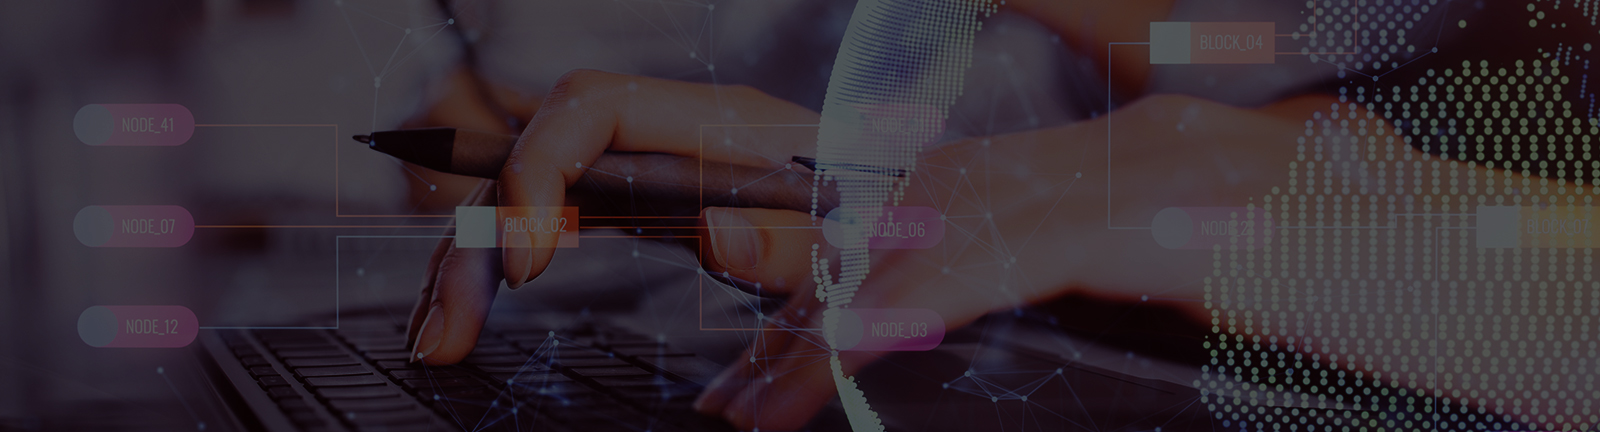 Effective customer lifecycle management (CLM) using business intelligence (BI) solutions